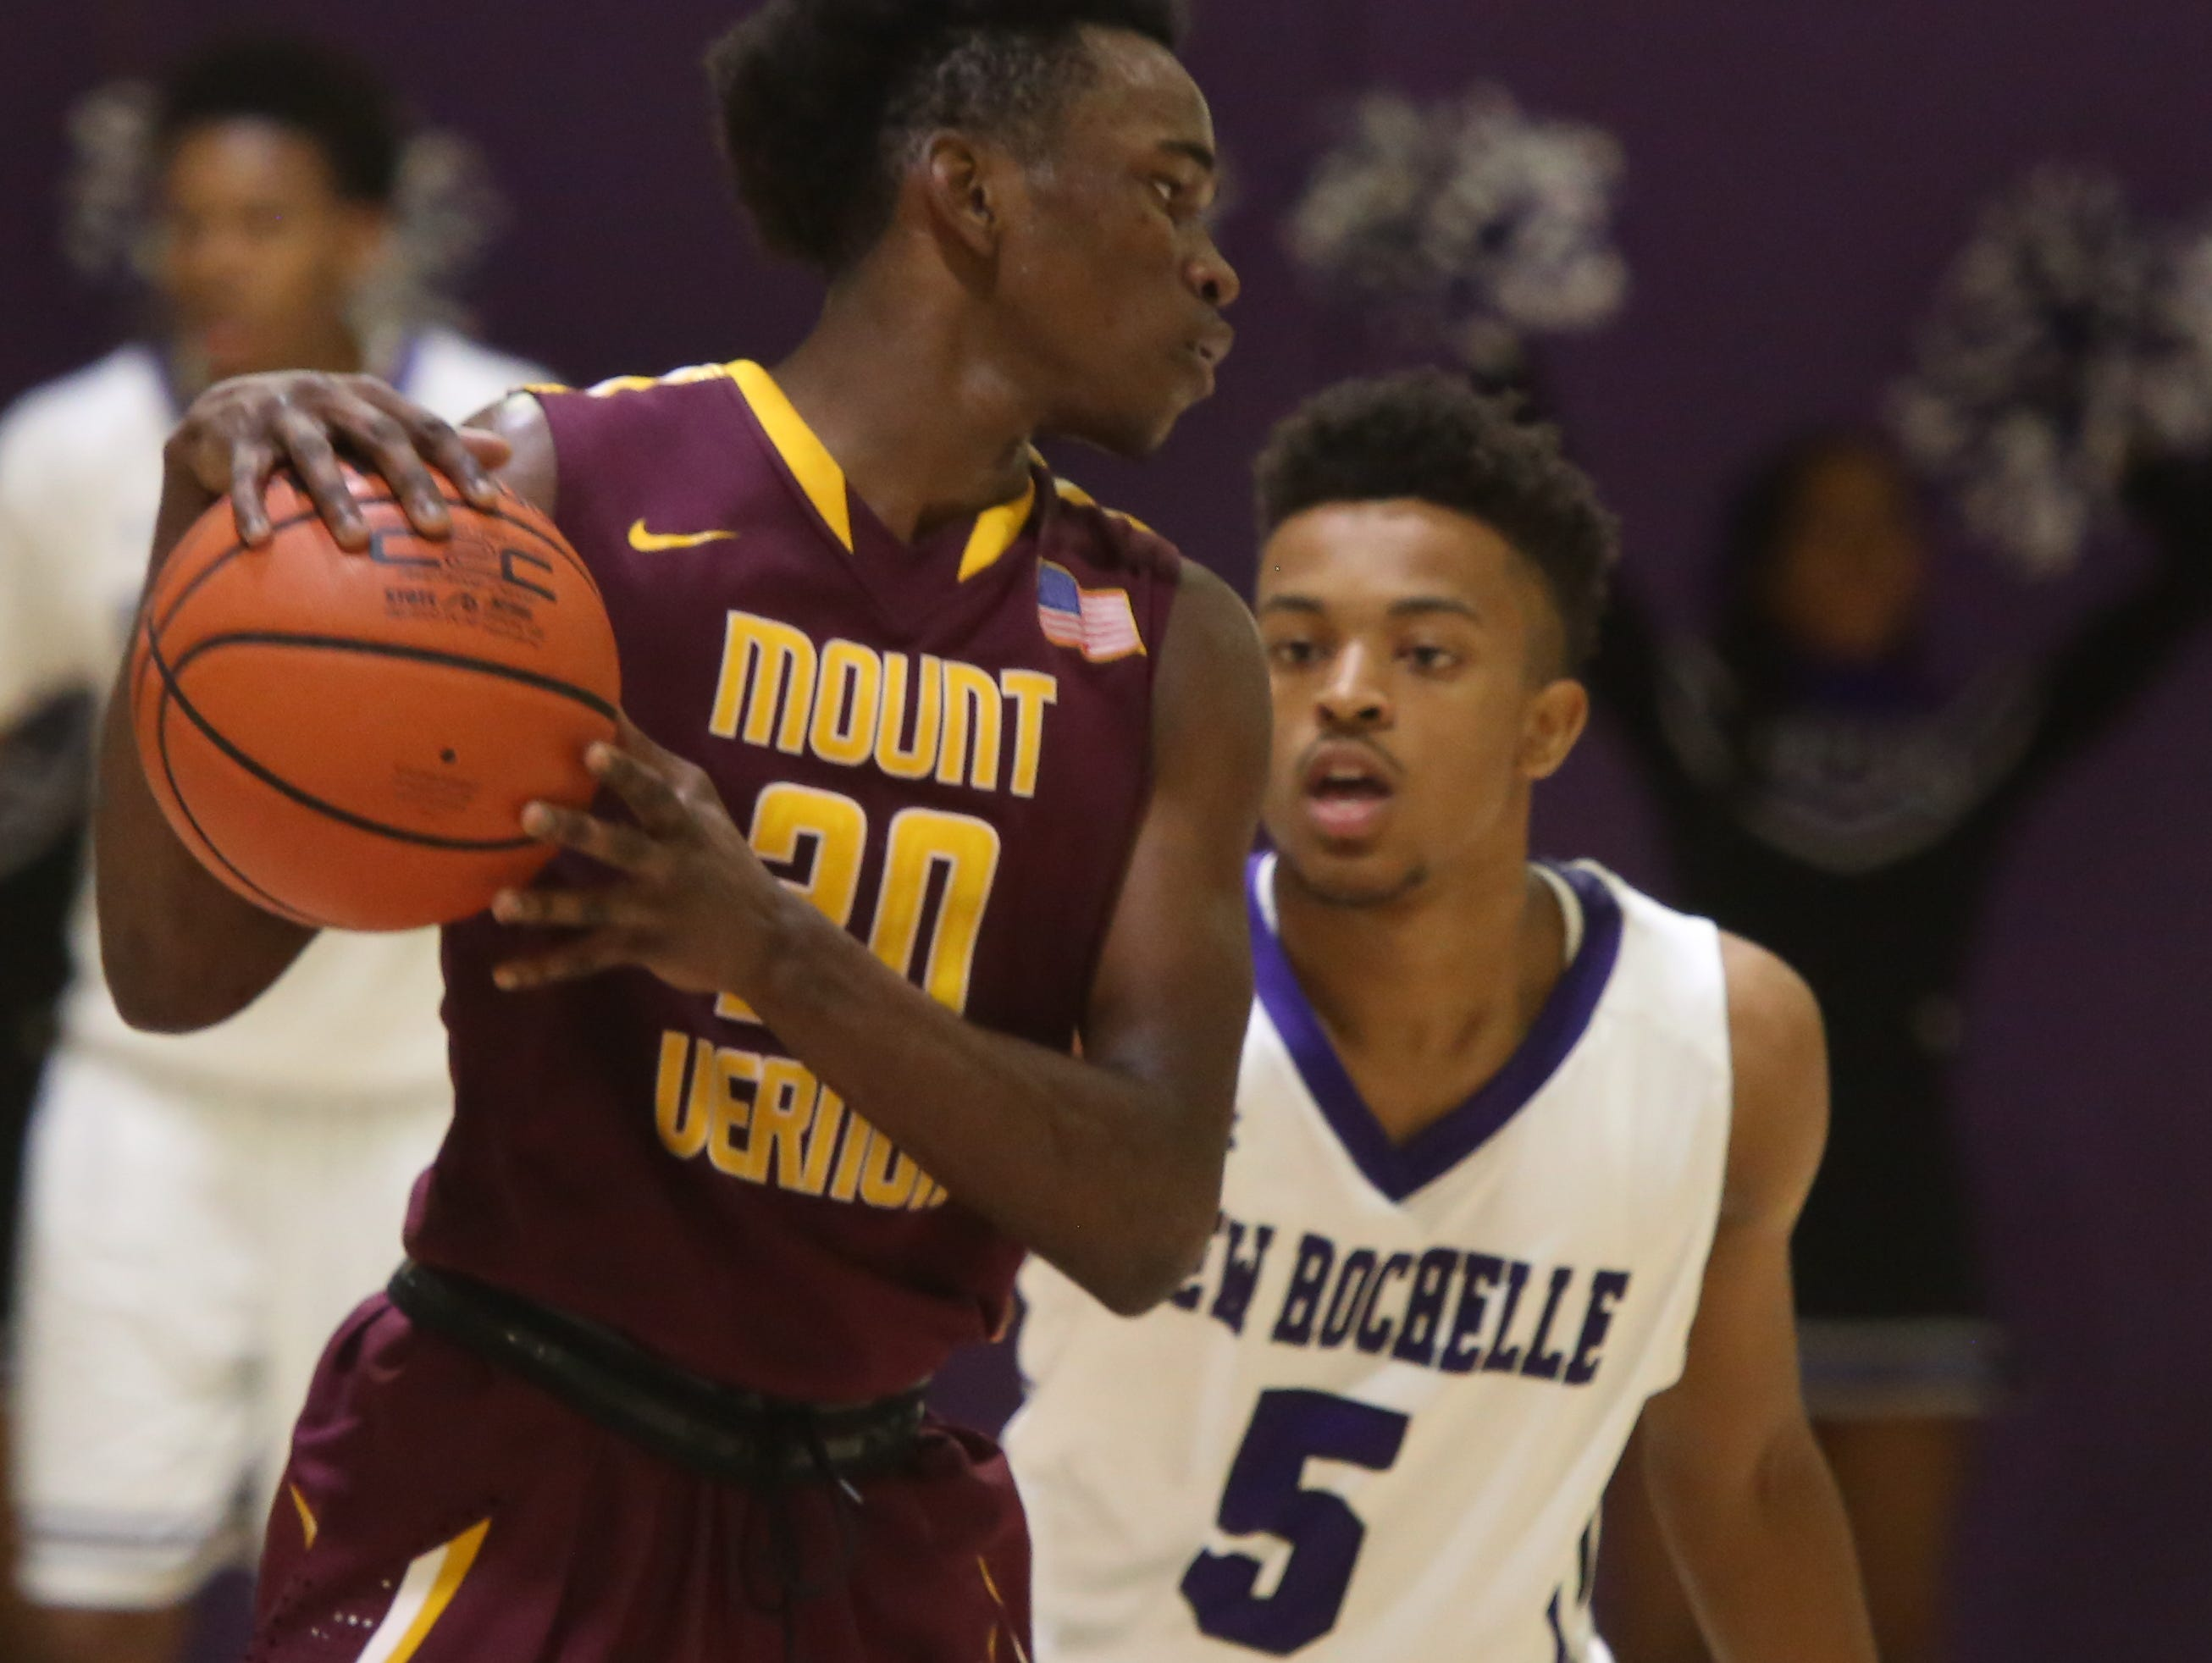 Tyeshon Marton (5) of New Rochelle guards Marco Morency (20) of Mount Vernon during game action at New Rochelle High School on Jan 4, 2016. Mount Vernon defeated New Rochelle 72-63.